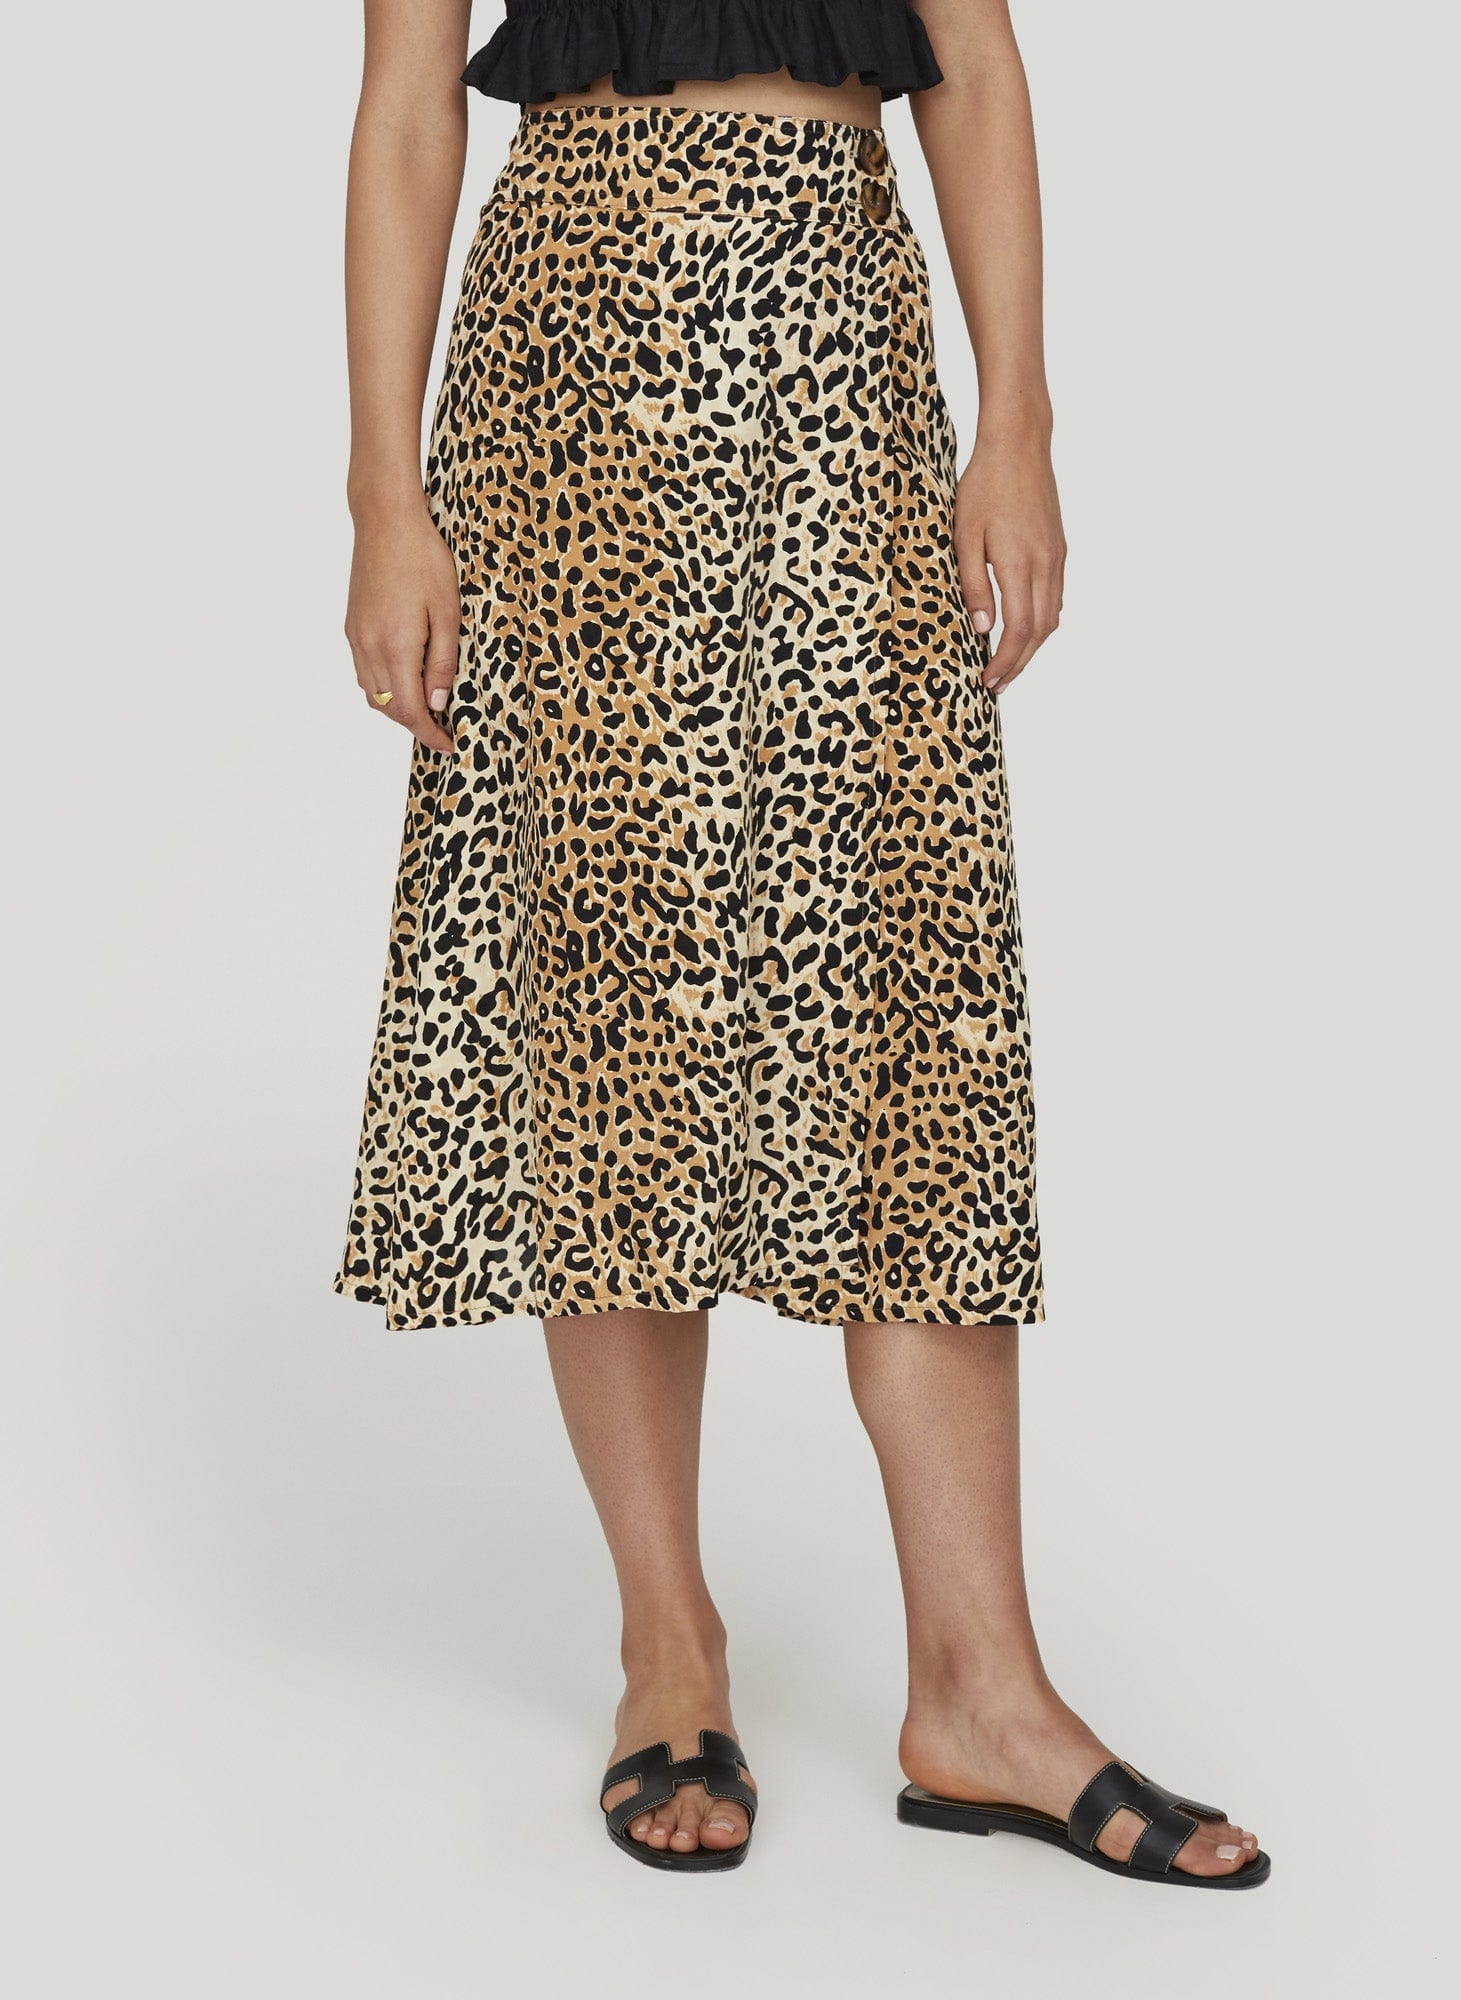 LE CINQ ANIMAL PRINT - VALOIS MIDI SKIRT